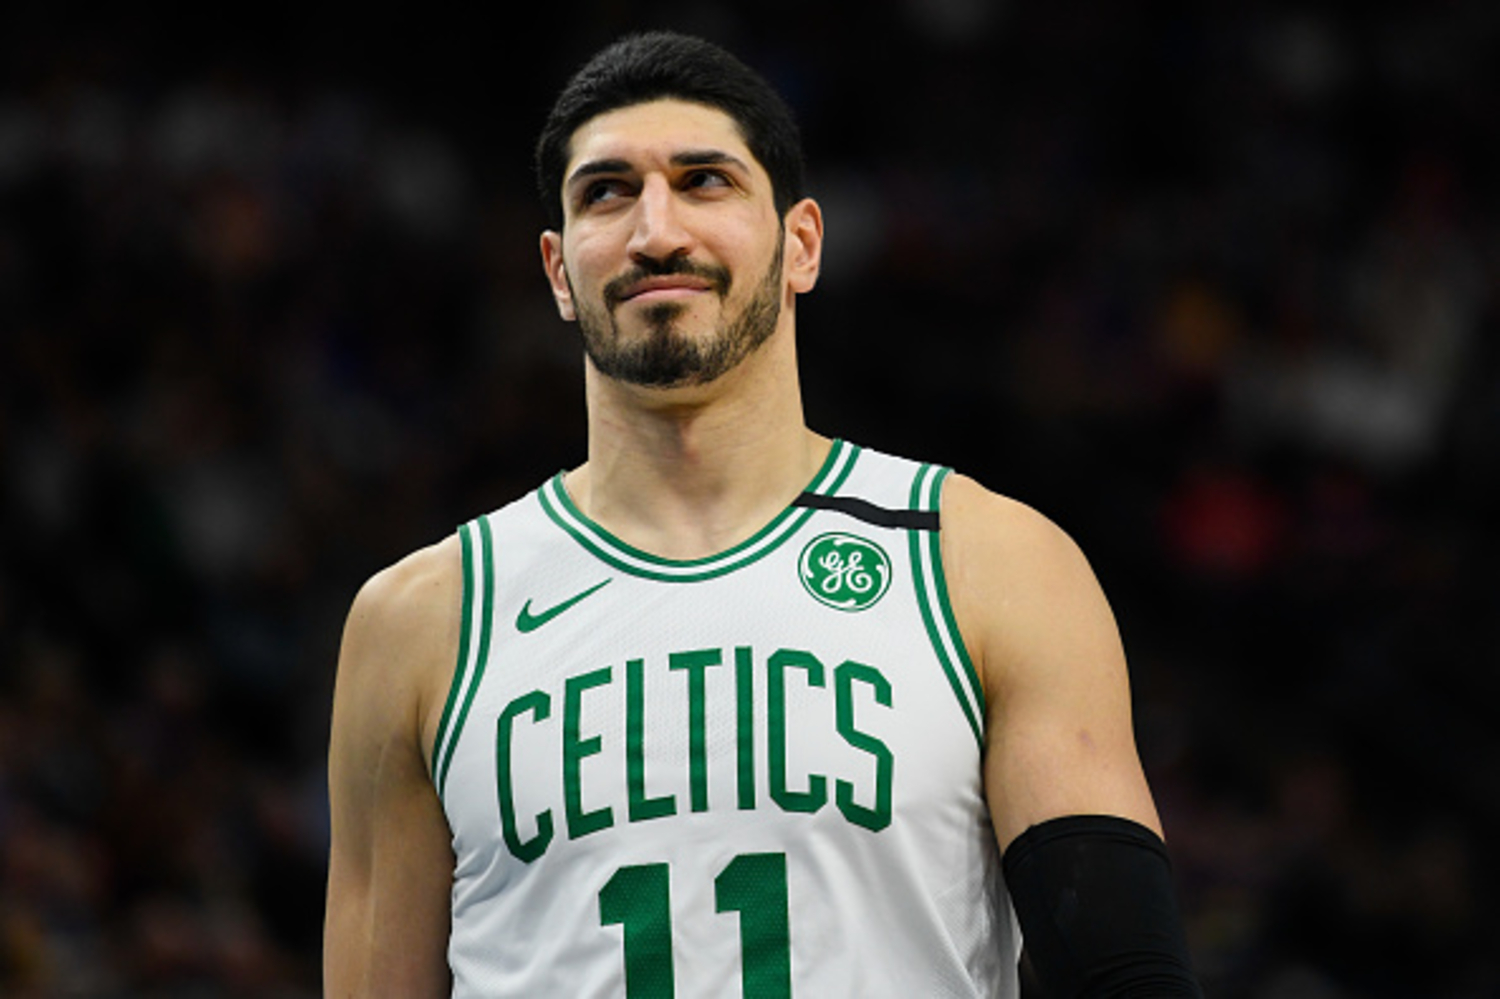 Enes Kanter's time in Boston may soon be over